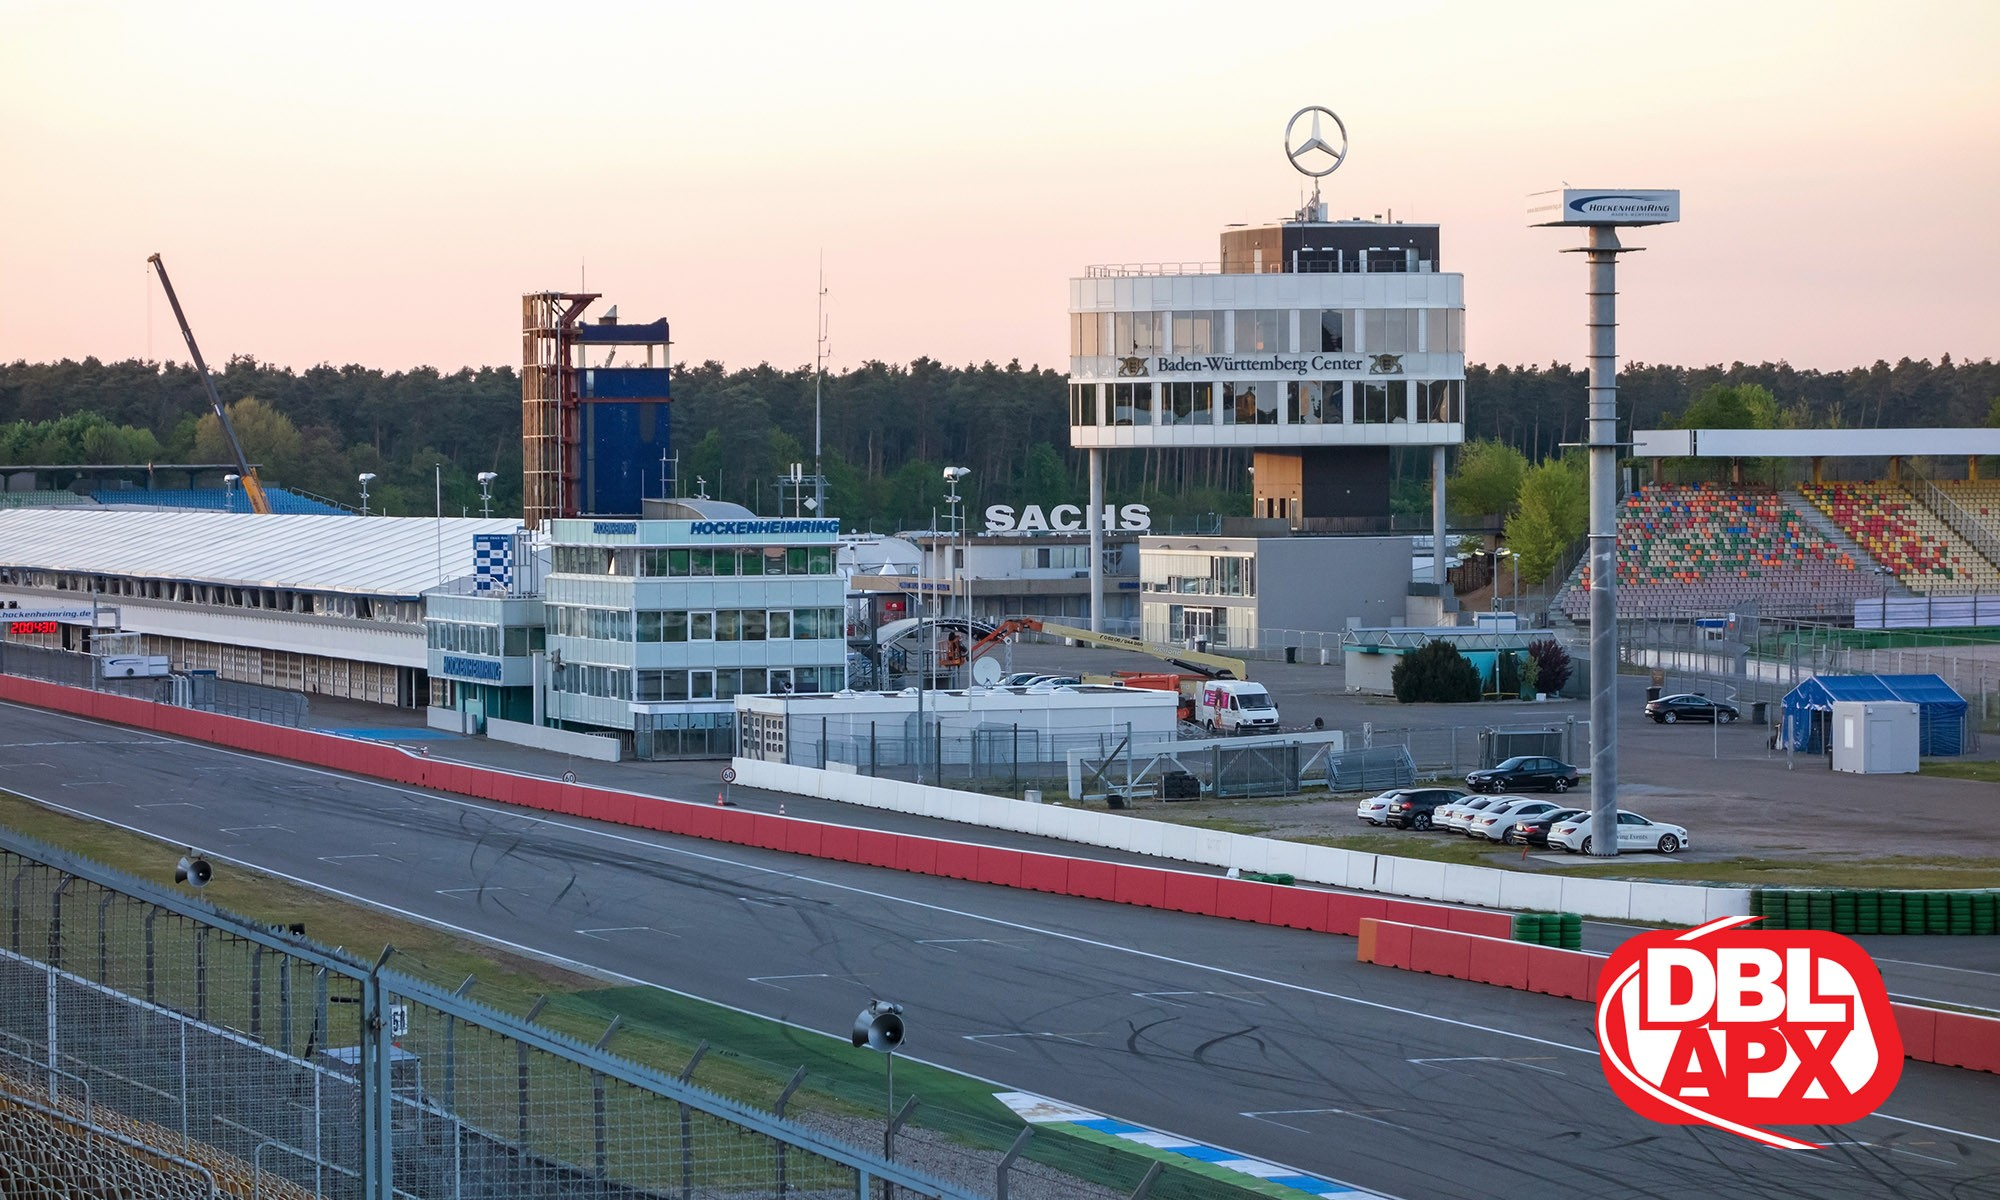 The German F1 Grand Prix preview is written by our F1 guest writer.